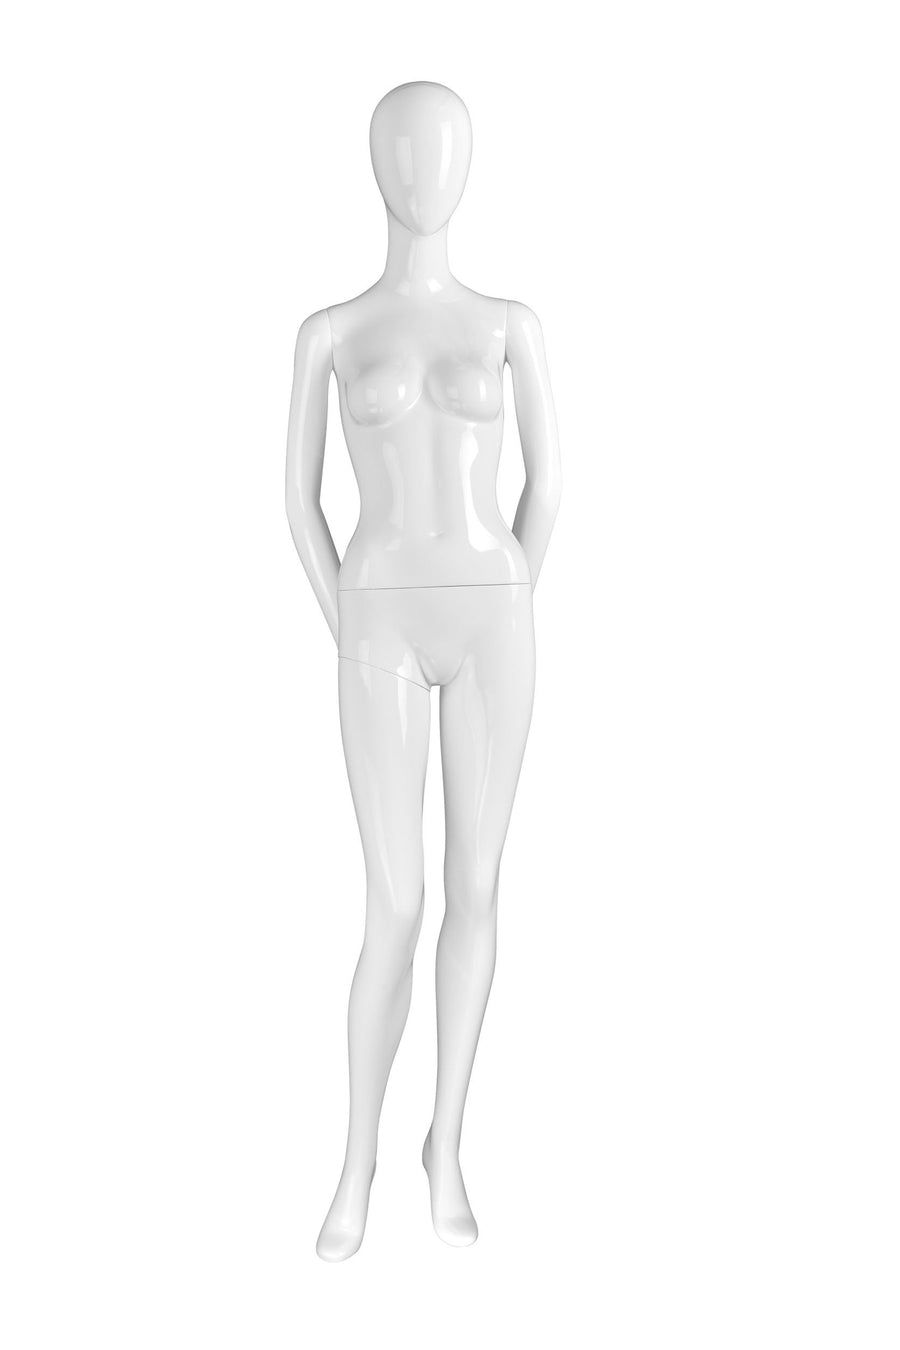 pure white female mannequin with blank face, arms behind back, and right knee slightly bent